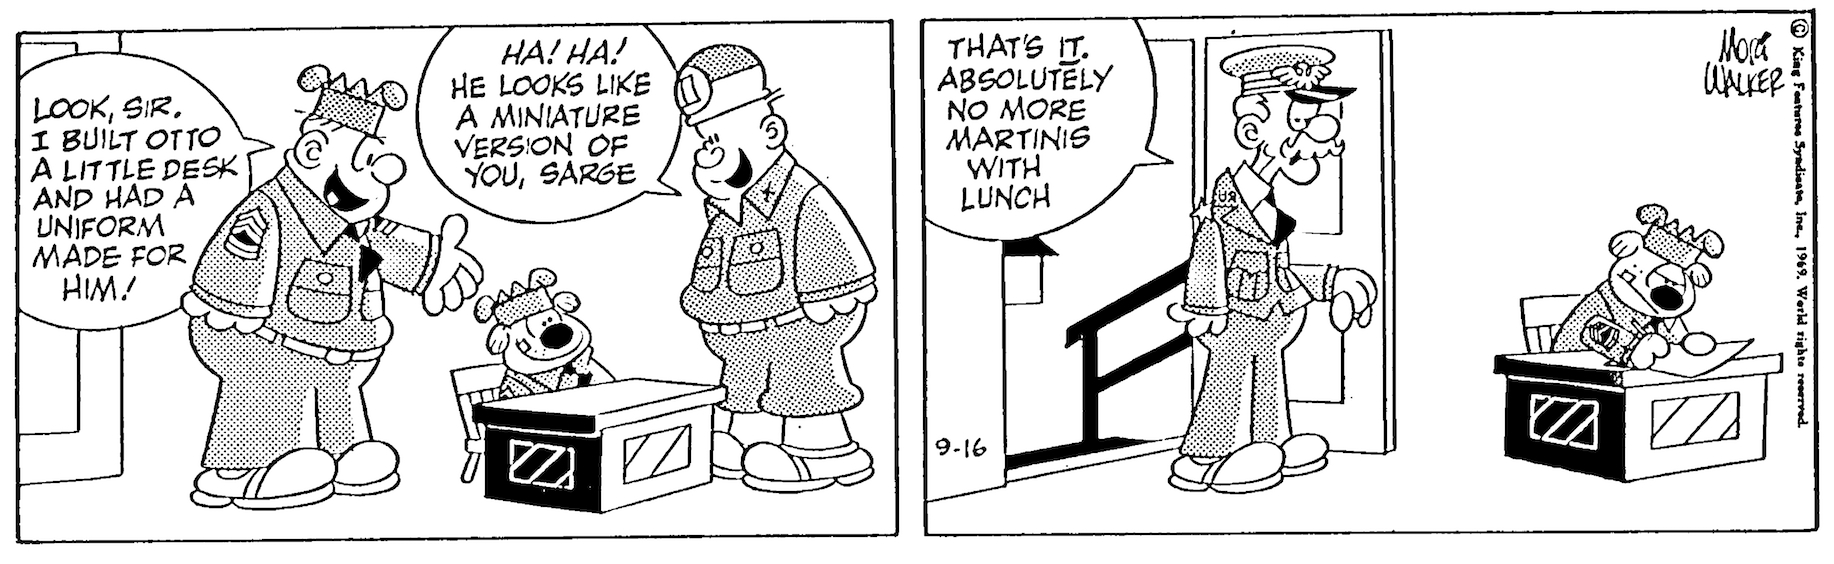 Beetle Bailey daily strip, September 16, 1969.